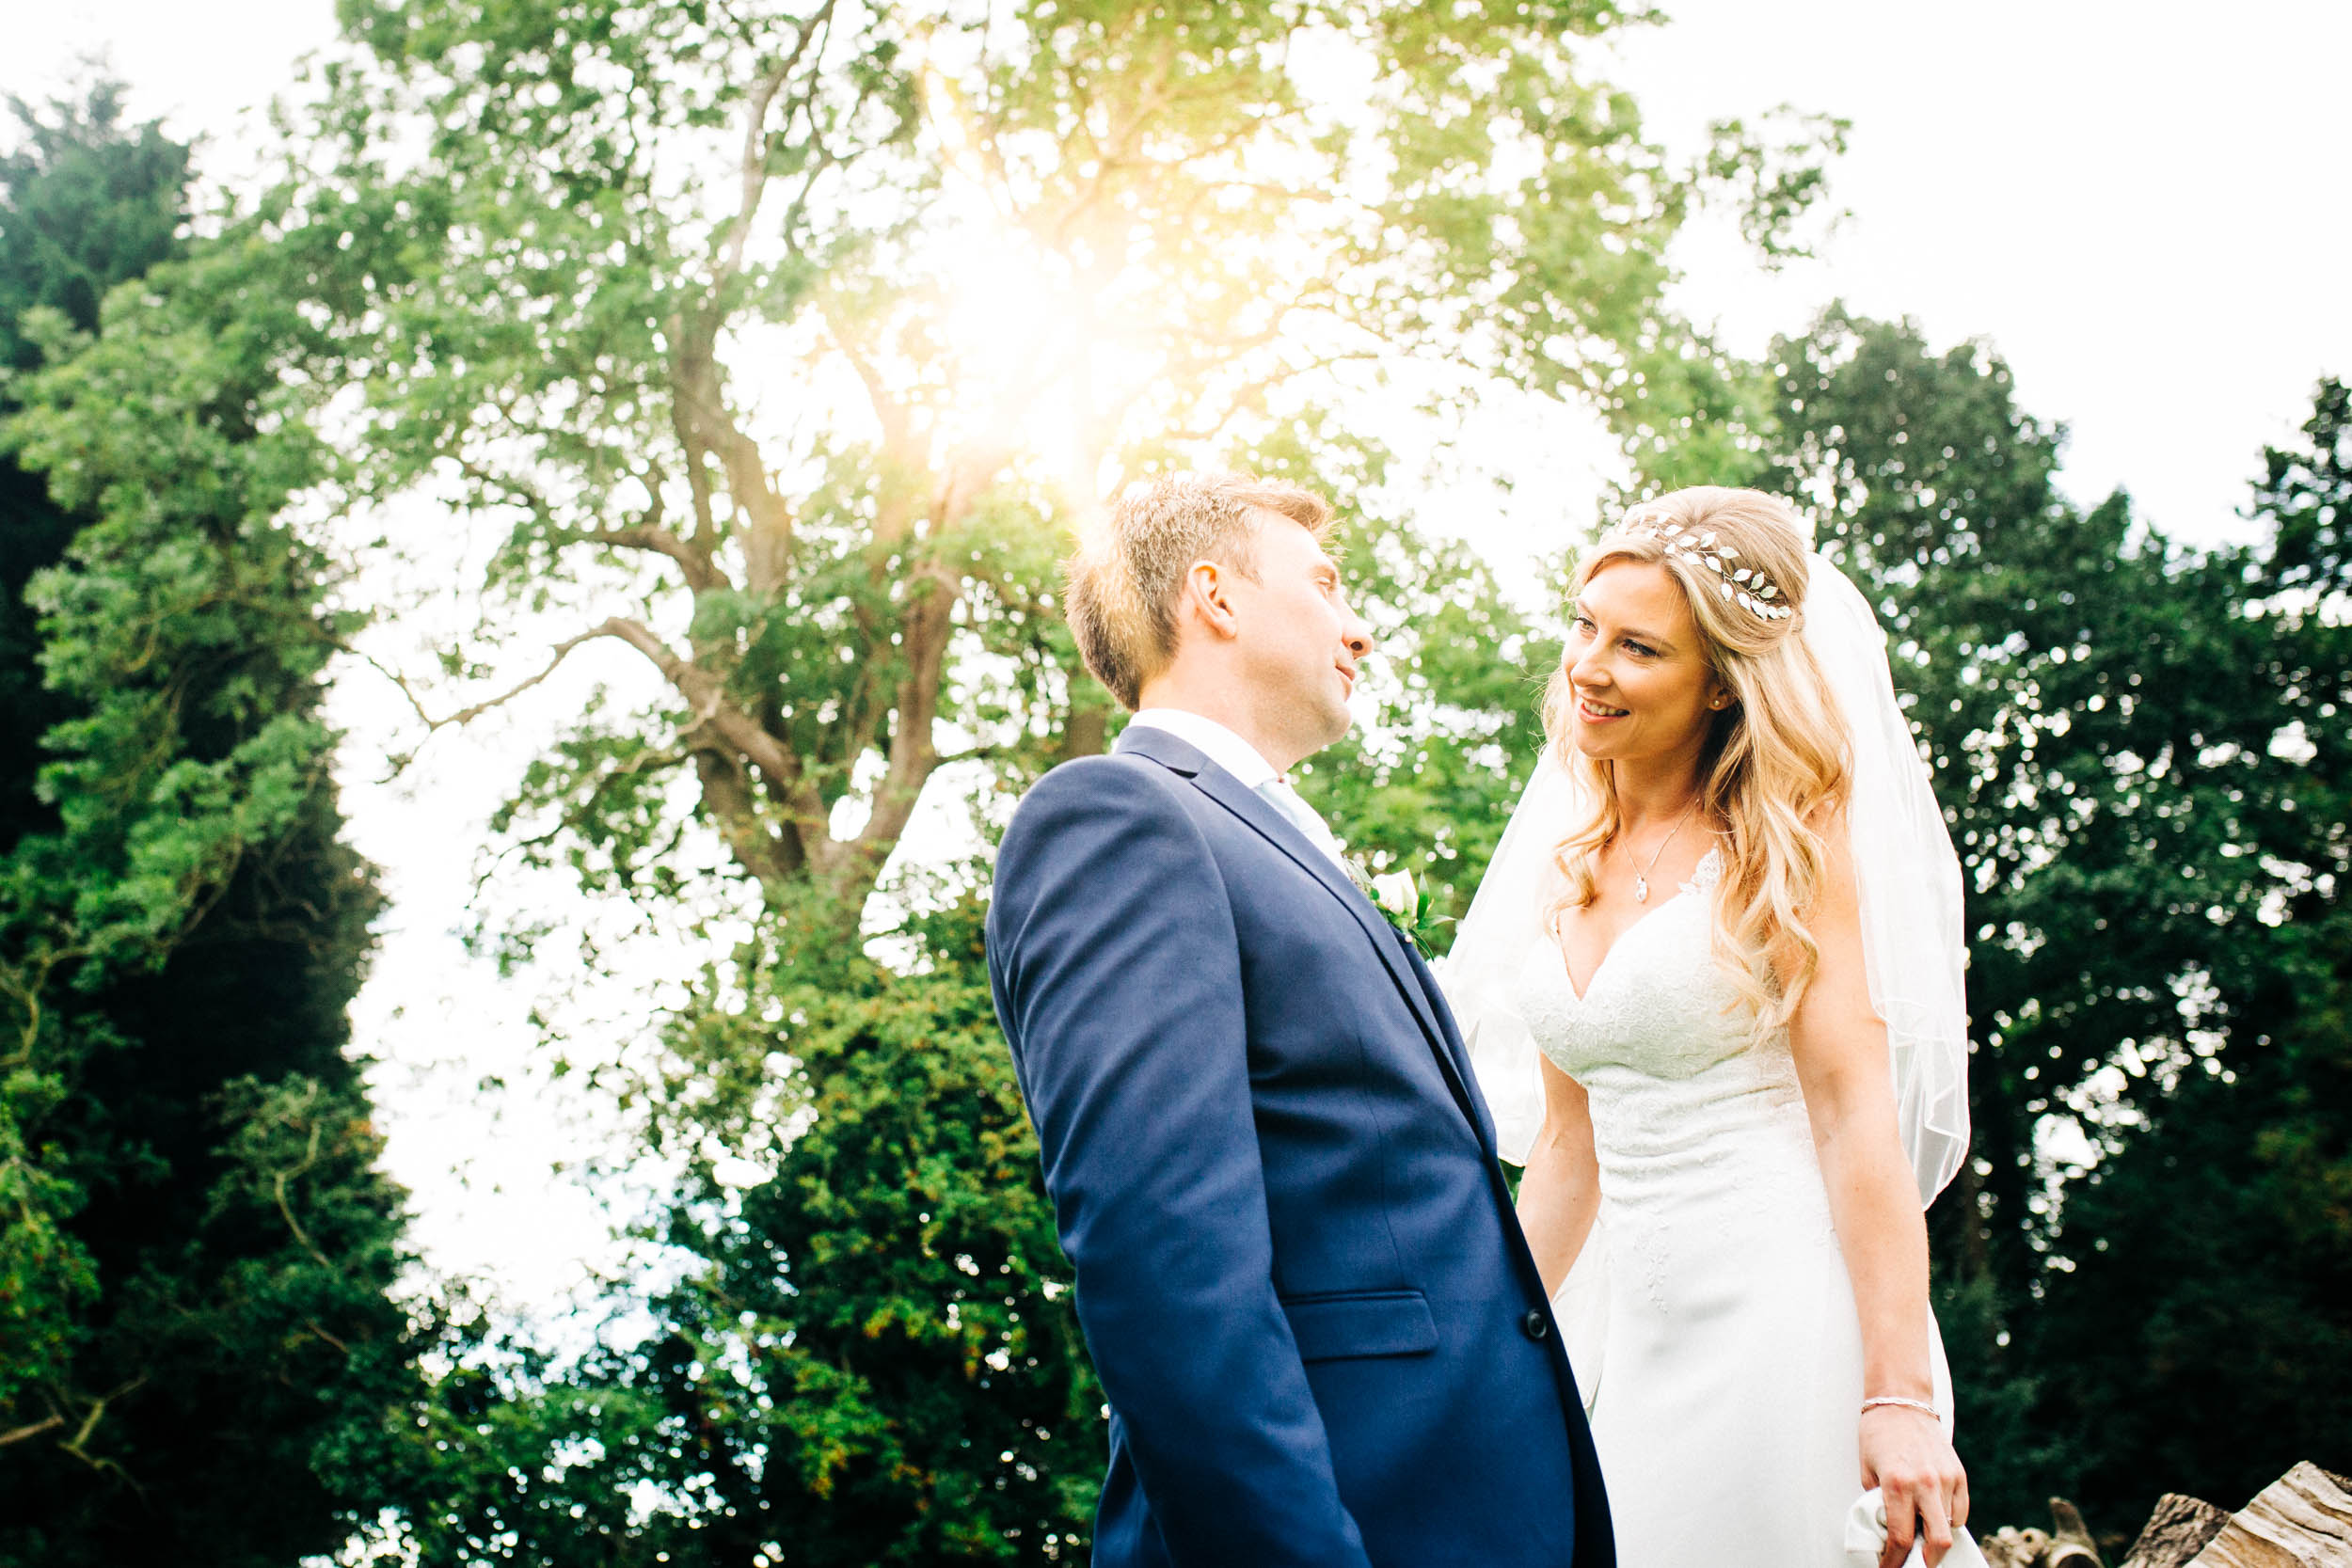 Alex_Sedgmond_Photography-SouthWalesWeddingPhotography-Wedding-Photographer-Cardiff-Chester-Pryors Hayes Golf Club-chesire-weddingphotography-fionaandvince-53.jpg